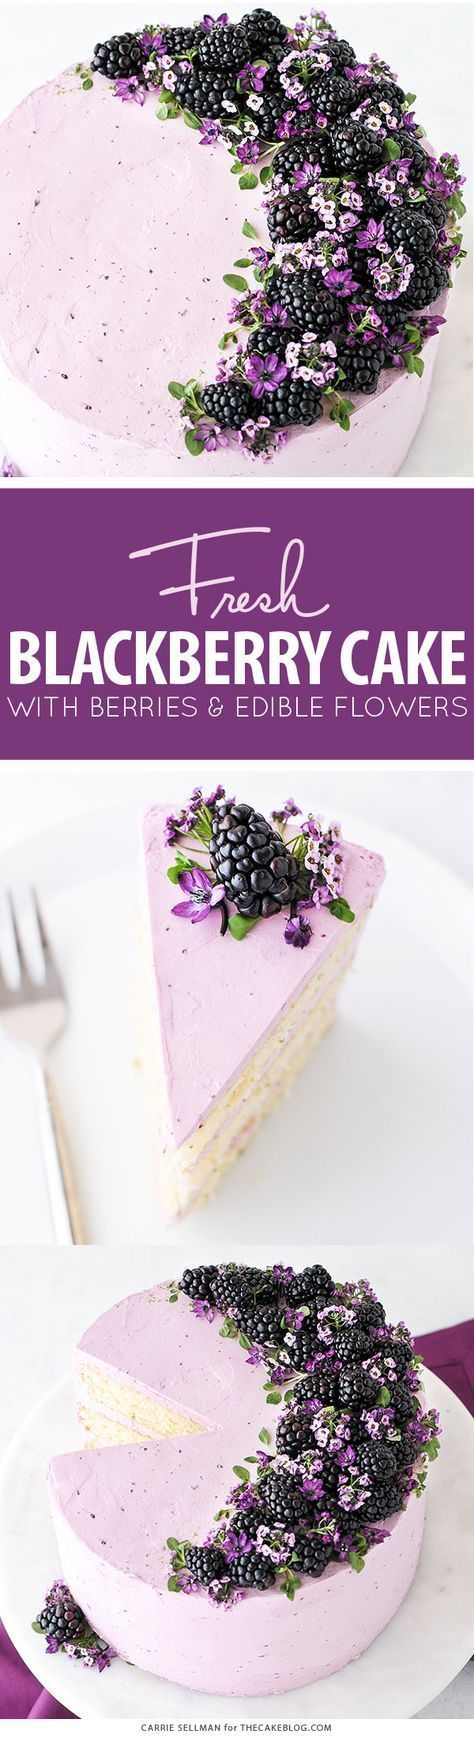 Blackberry Lime Cake - tender cake infused with lime zest, frosted with blackberry buttercream, topped with fresh blackberries and edible flowers | by Carrie Sellman for The Cake Blog | AD /bobsredmill/ BobsSpringBaking